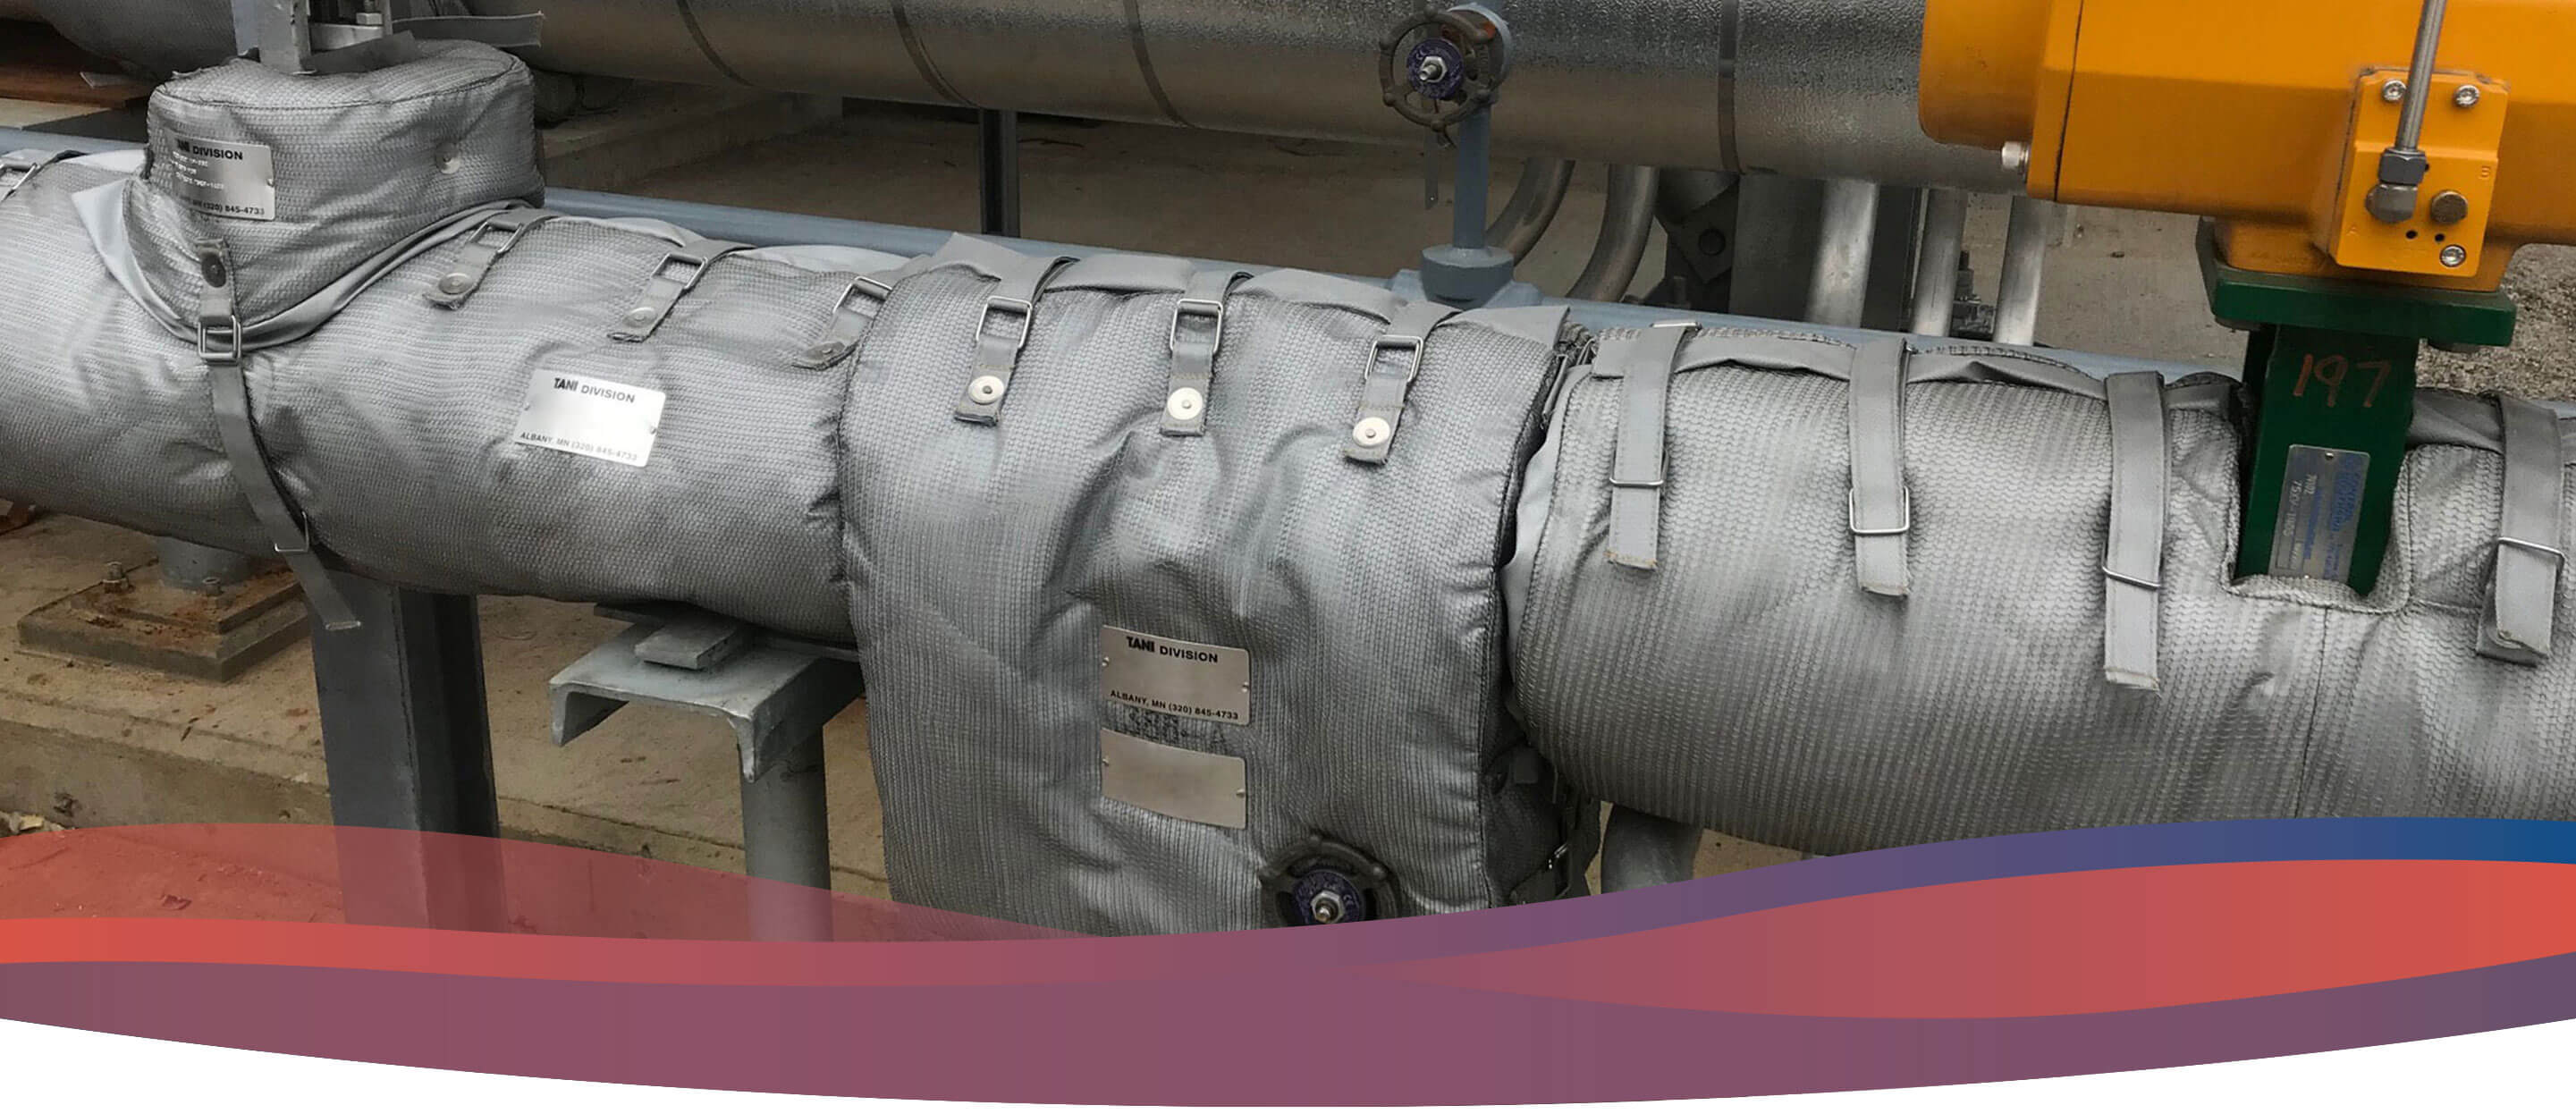 Ducts wrapped in a Tani industrial blanket